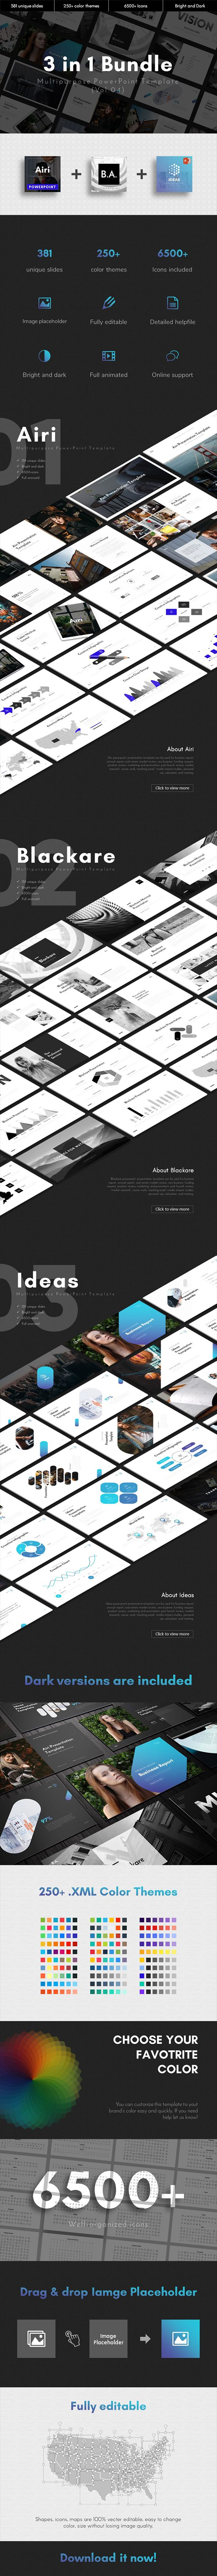 5563 best PowerPoint Templates images on Pinterest | Advertising ...